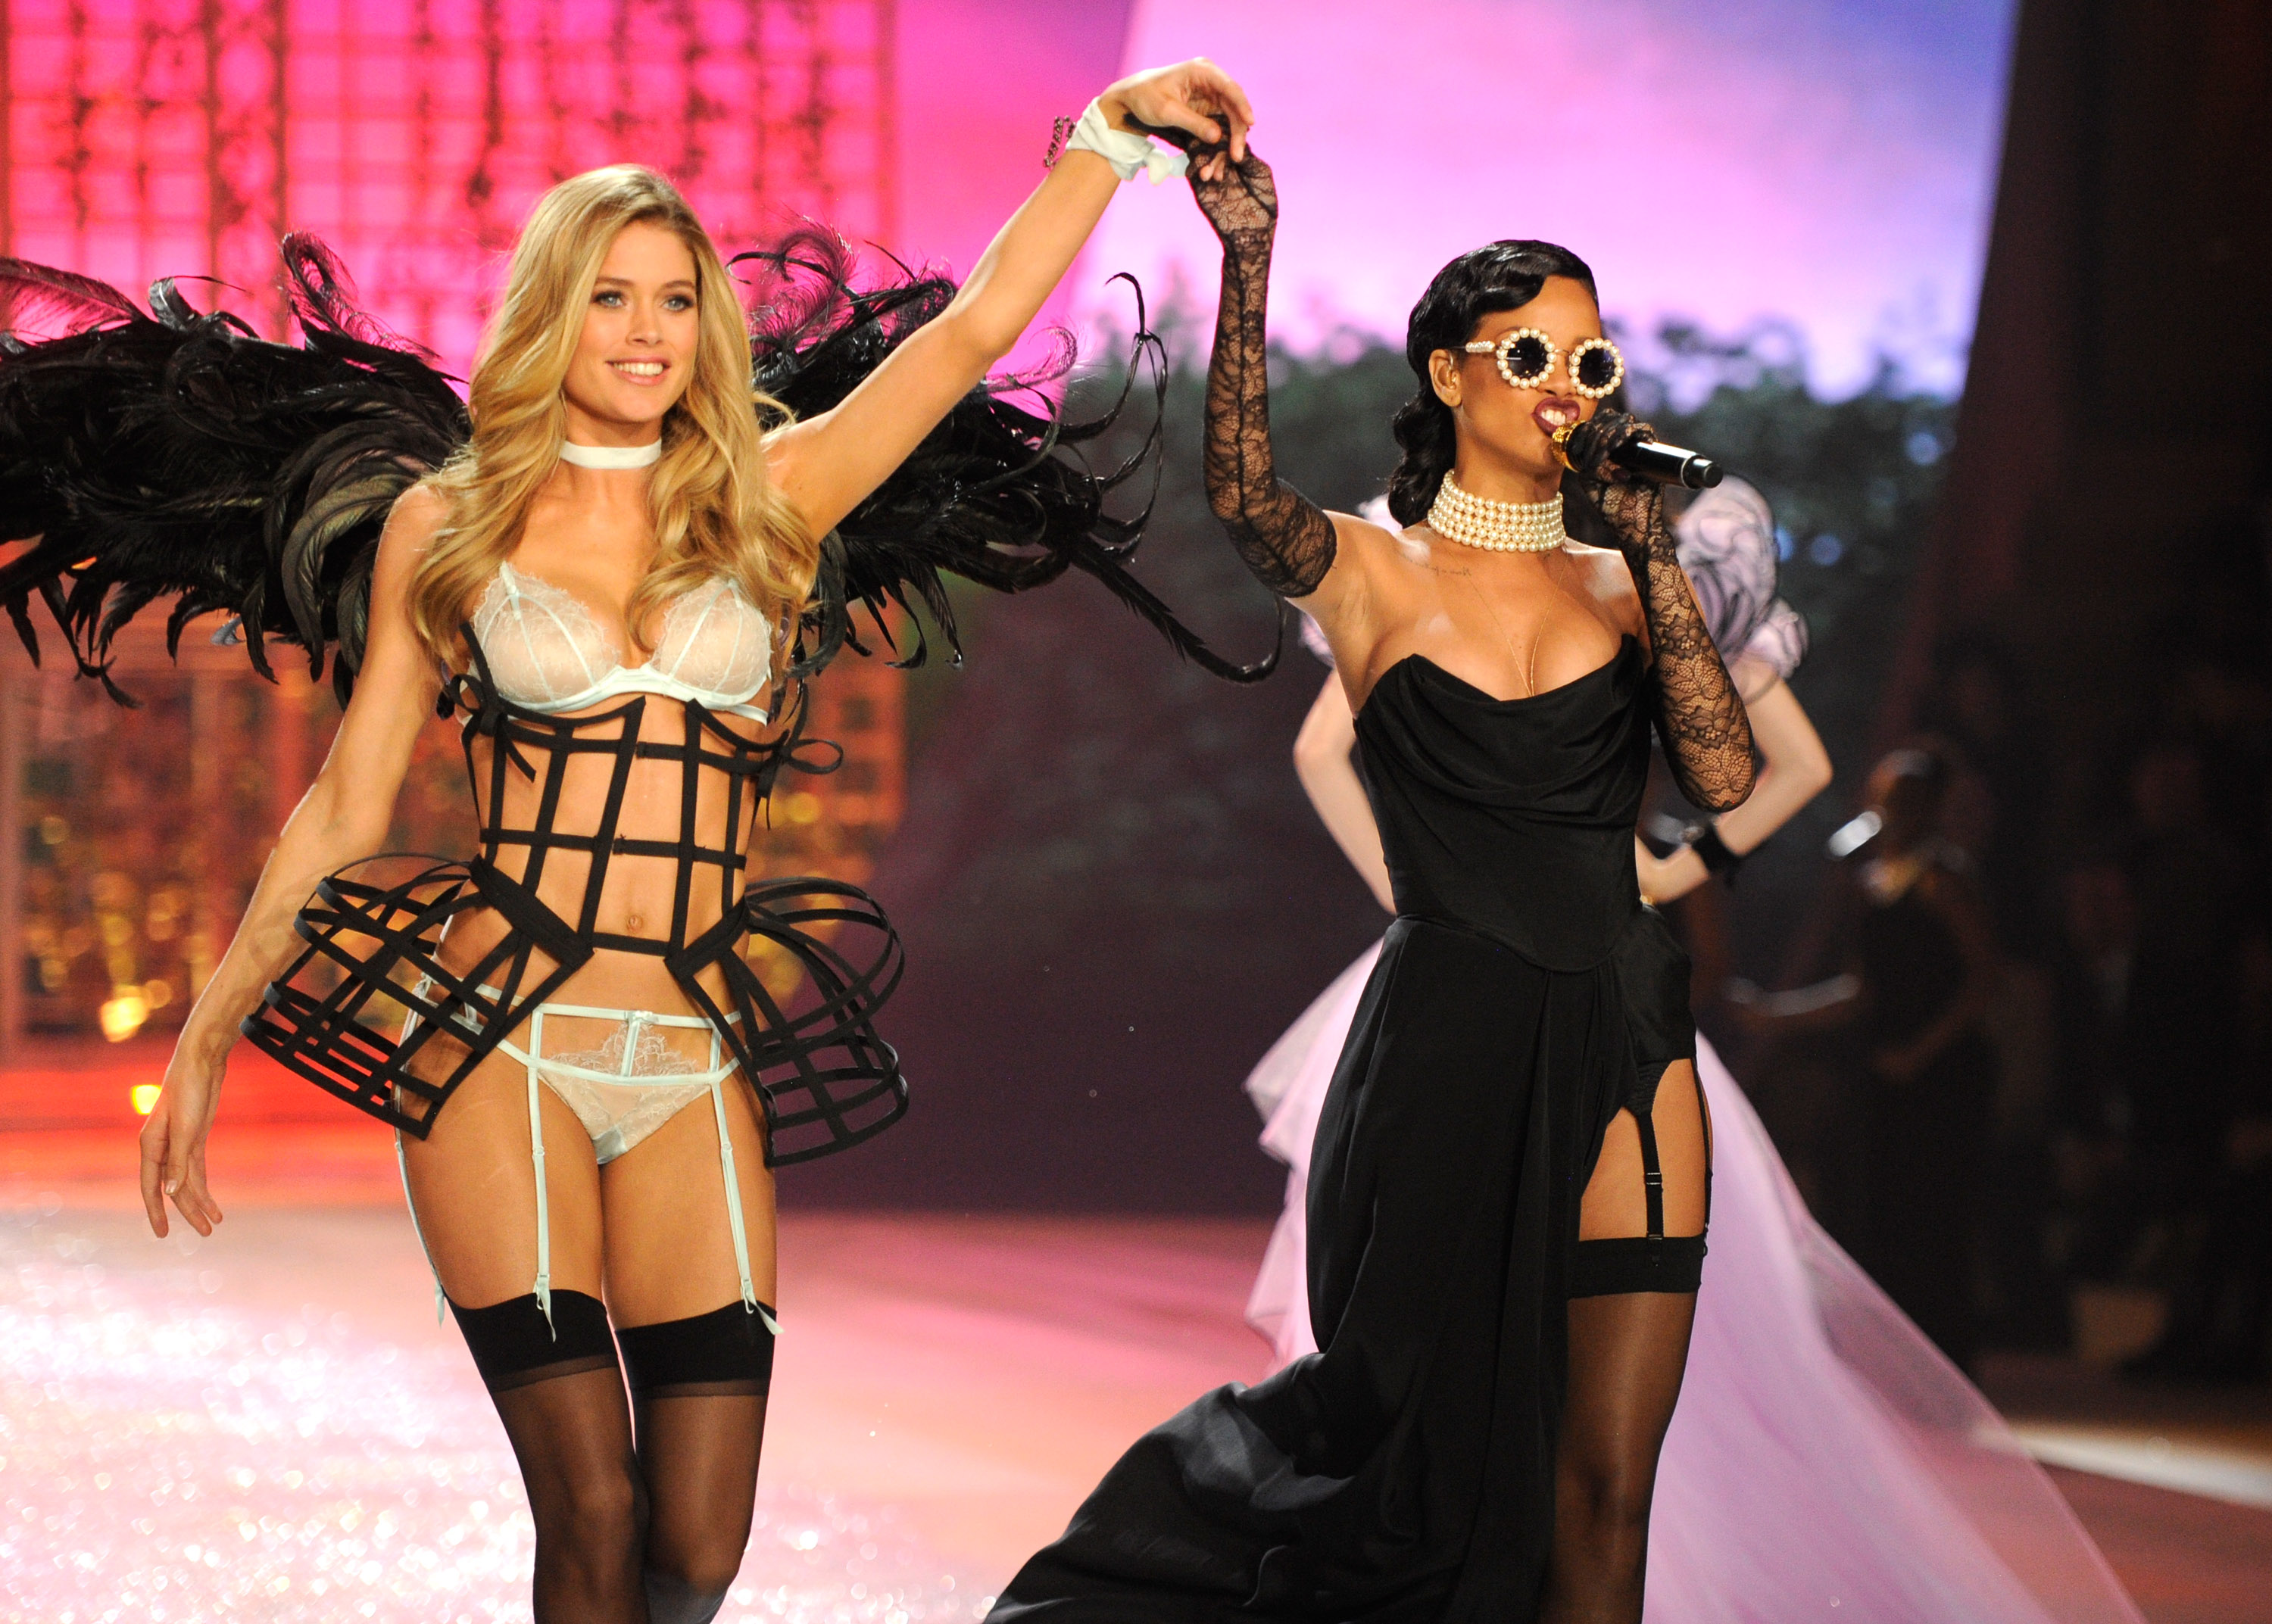 Rihanna, Bieber, and the Sexy Victoria's Secret Angels